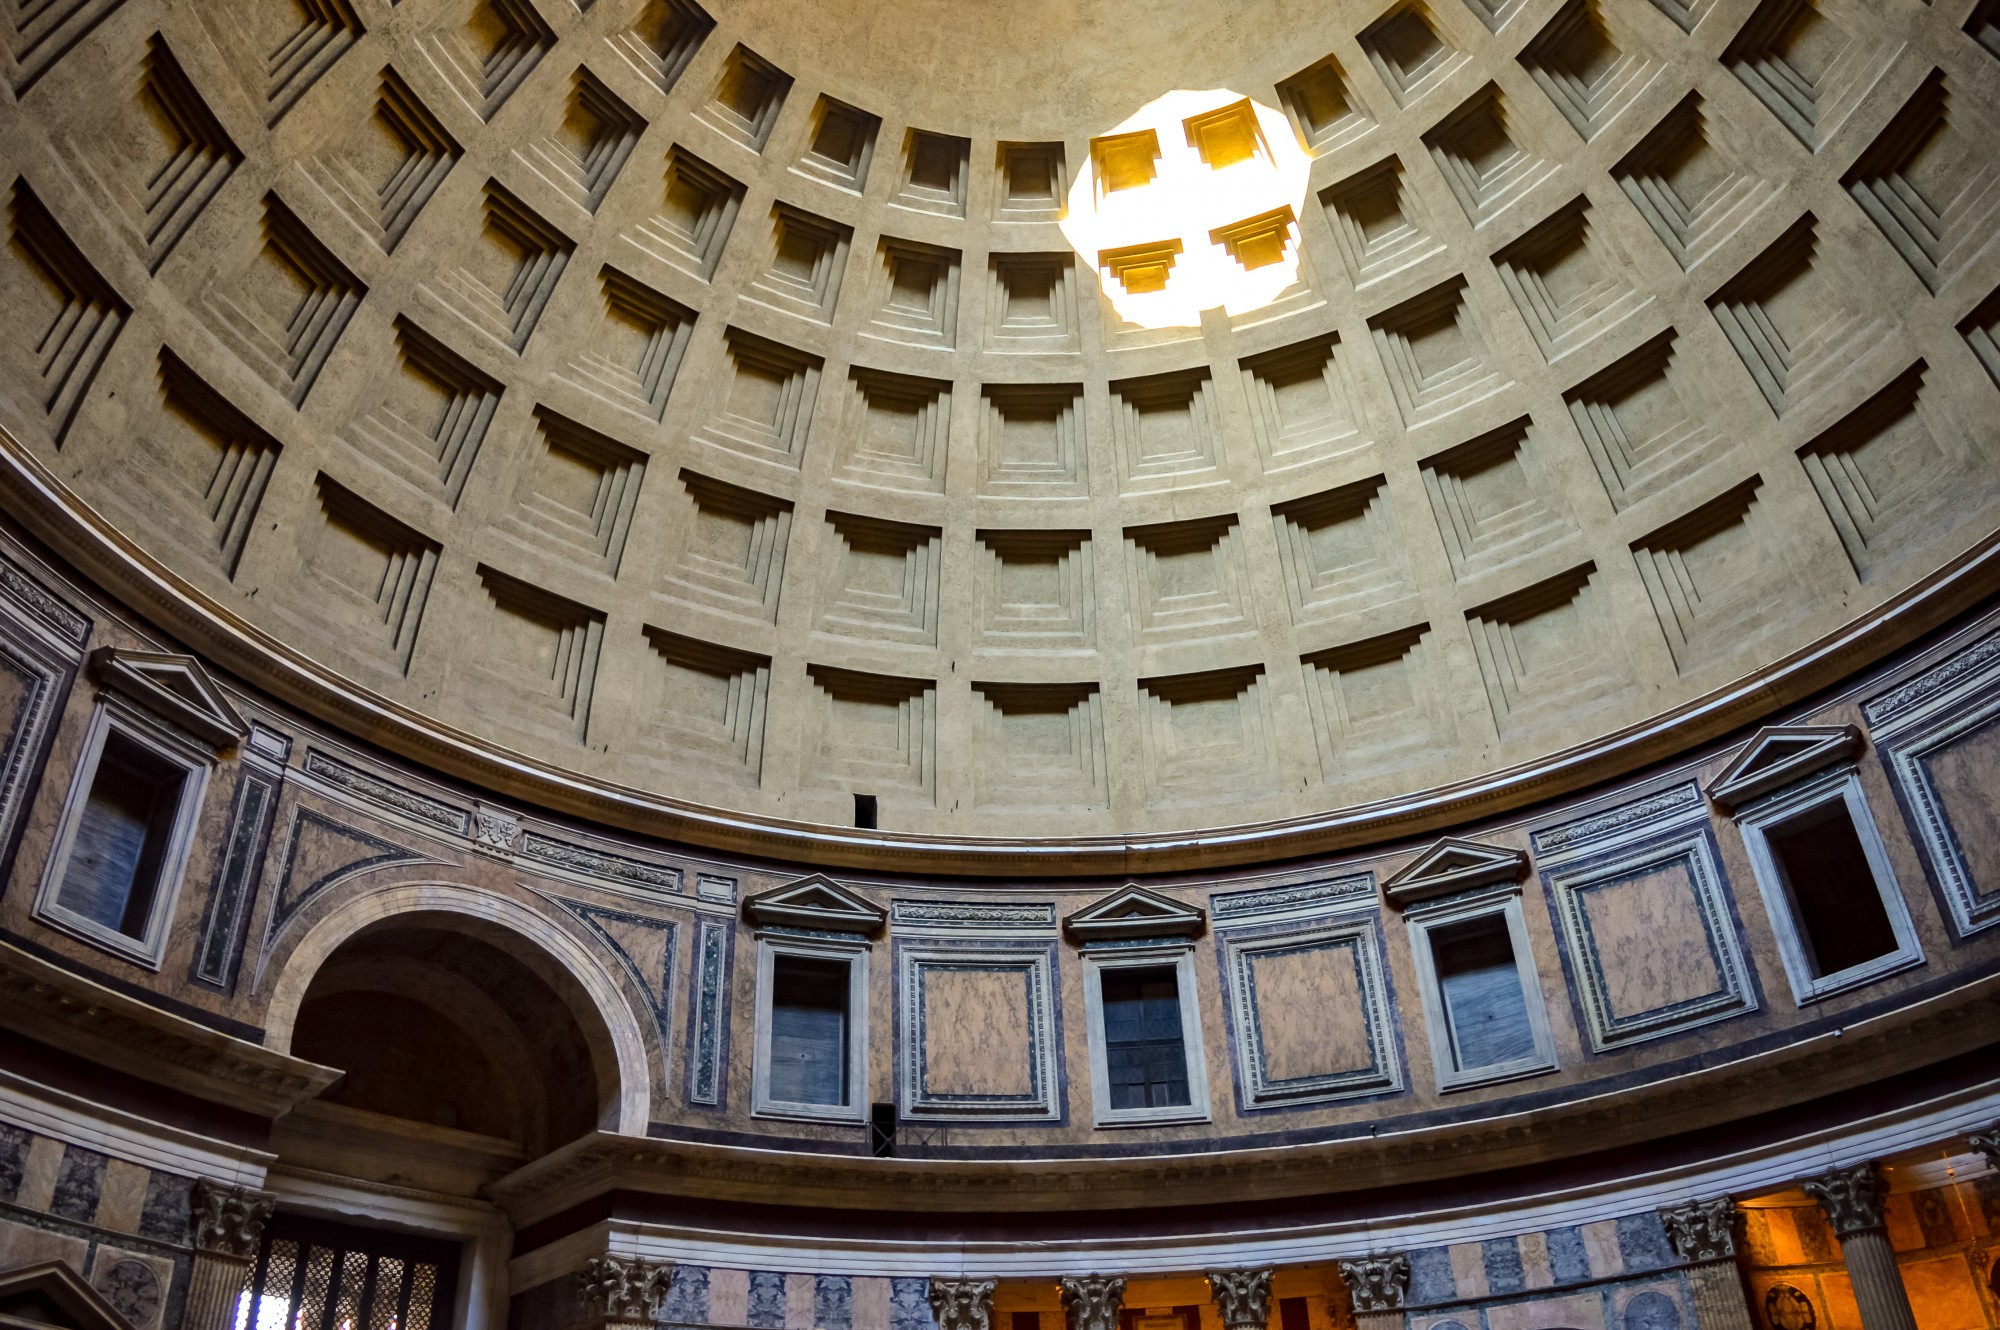 The dome at the Pantheon in Rome